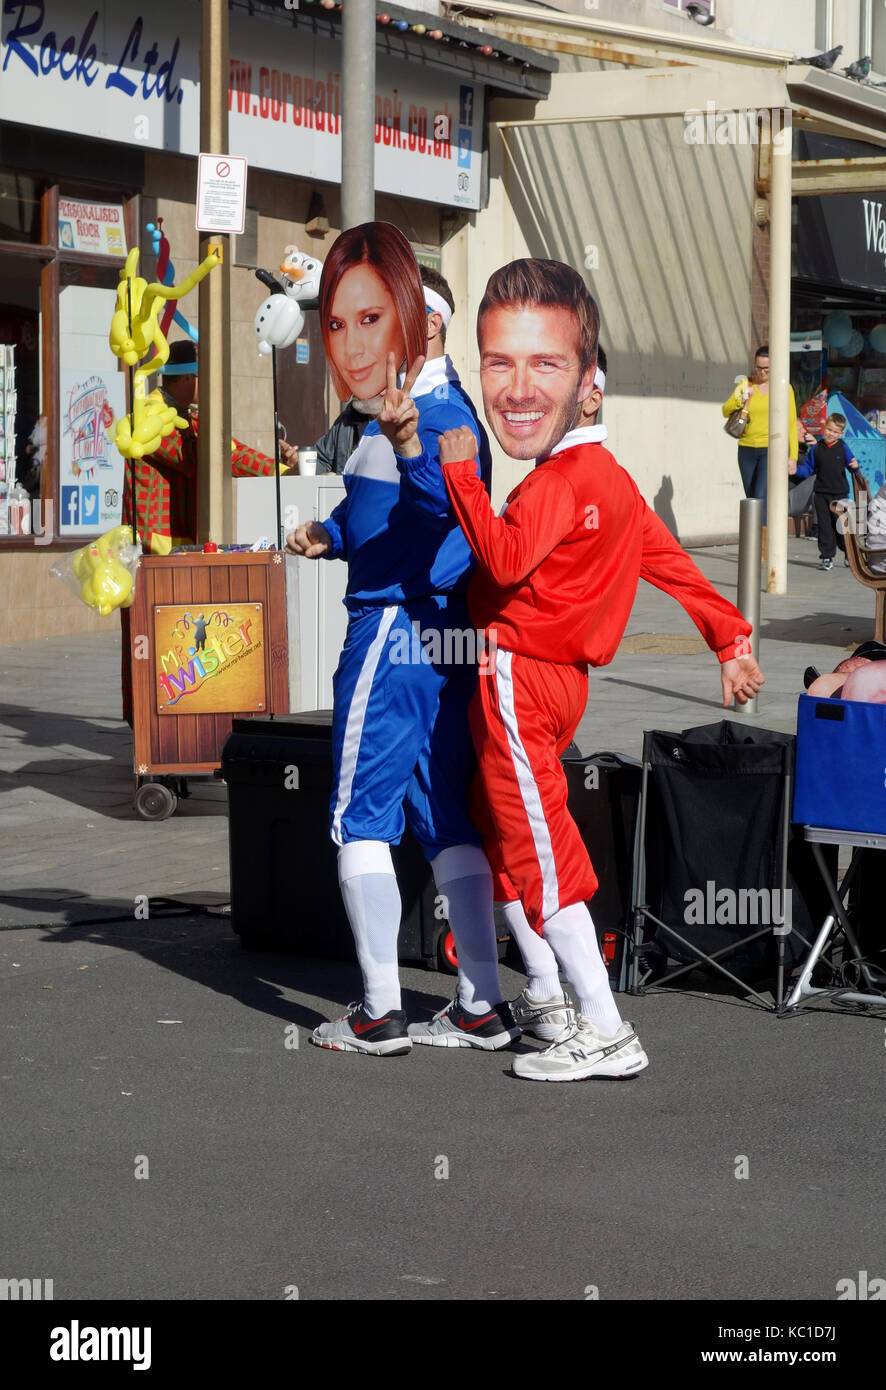 street entertainers imitating posh and becks wearing face masks. - Stock Image